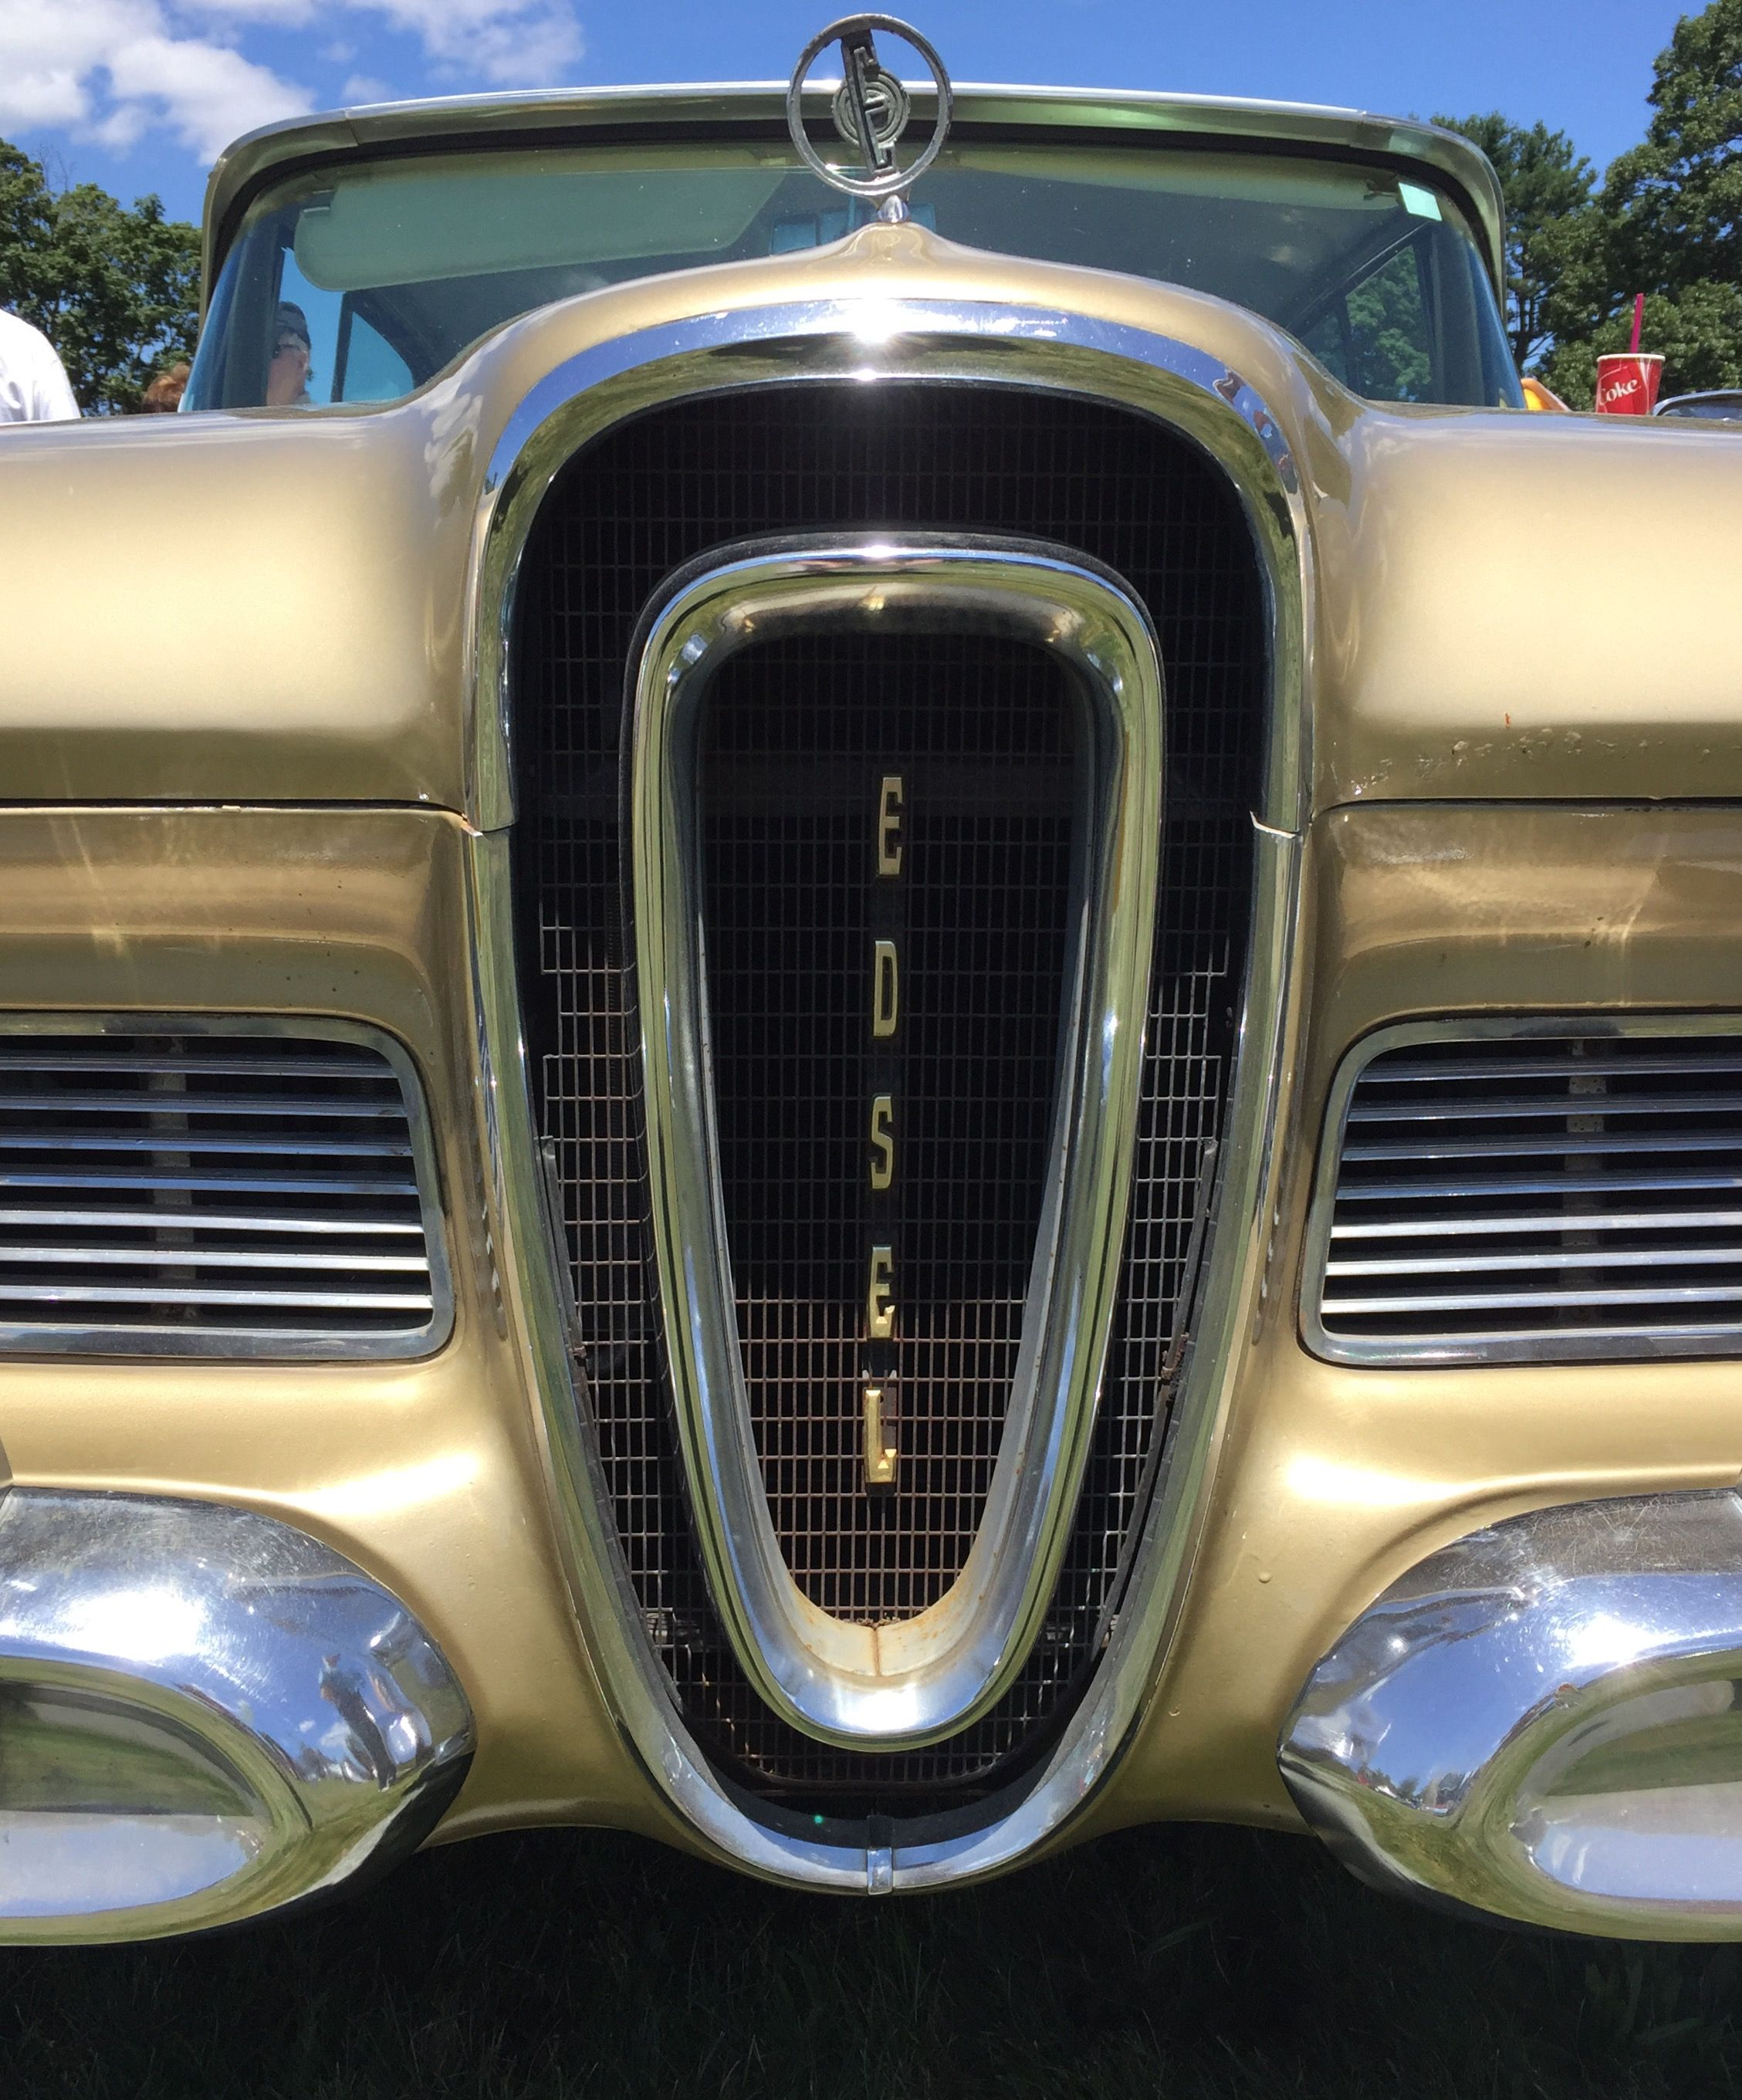 Pin by Jay Geyer on Classic Cars Classic cars, Gear